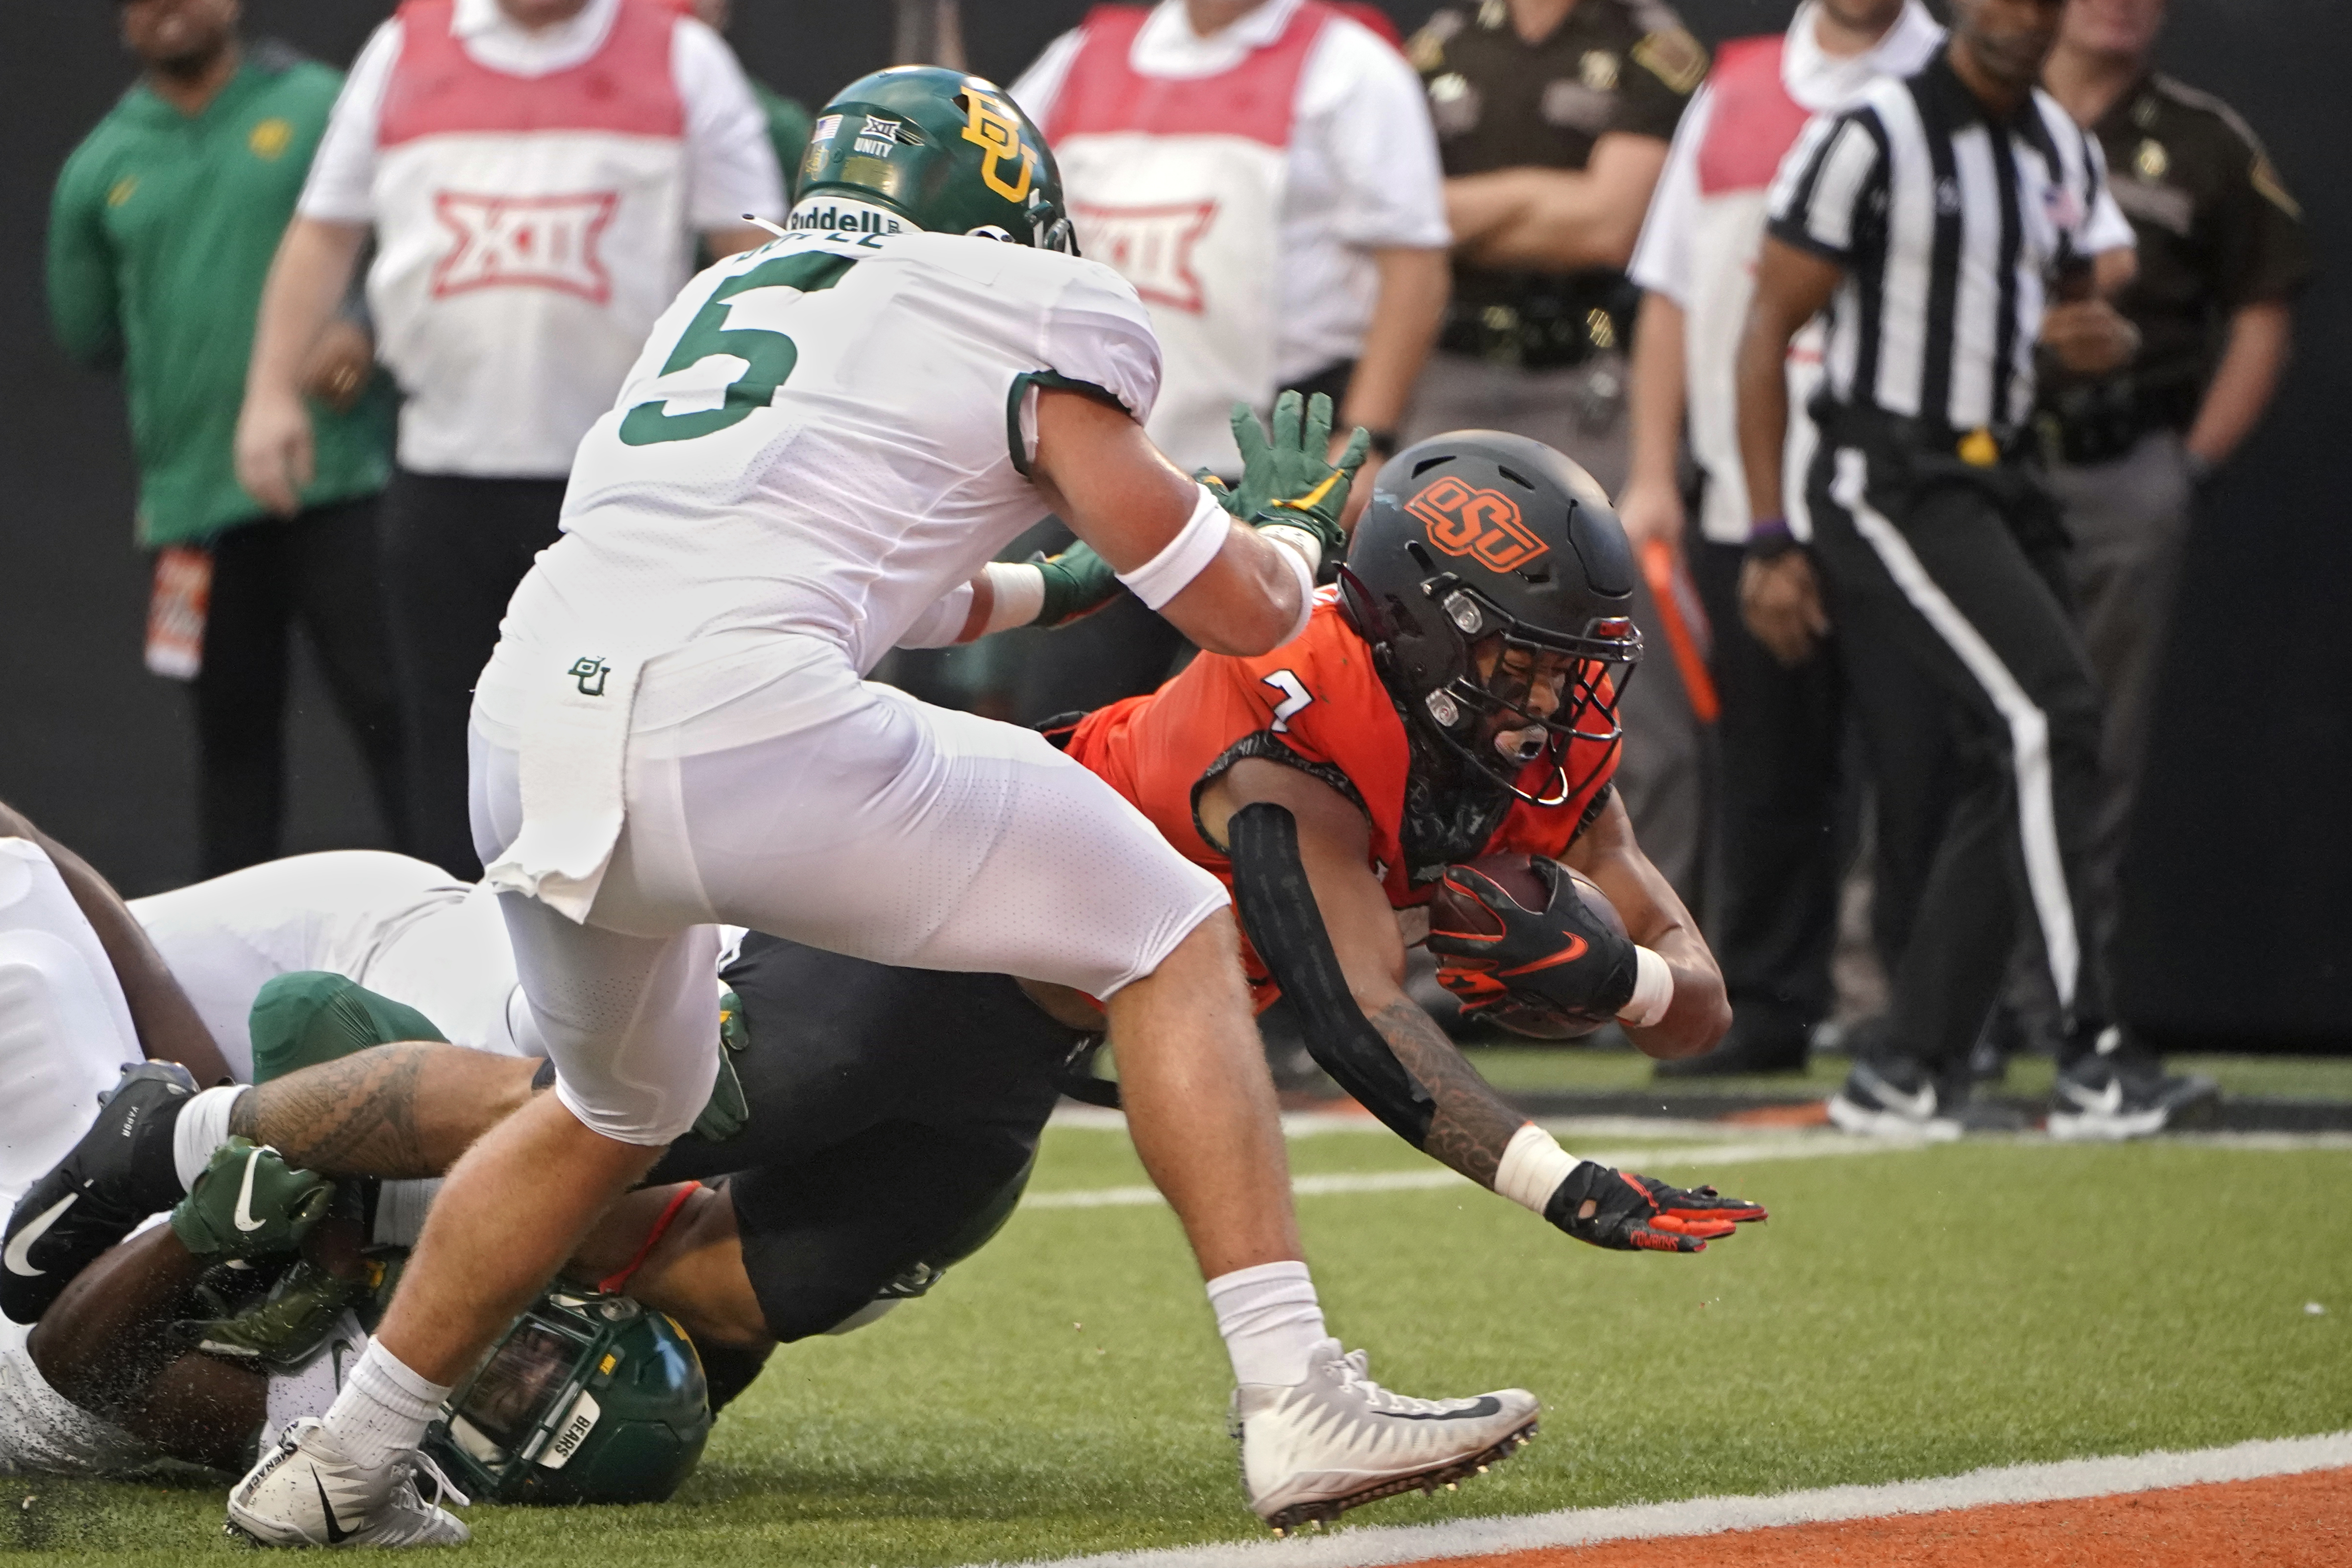 Oklahoma State running back Jaylen Warren (7) dives into the end zone in front of Baylor's Dillon Doyle (5) for a touchdown.